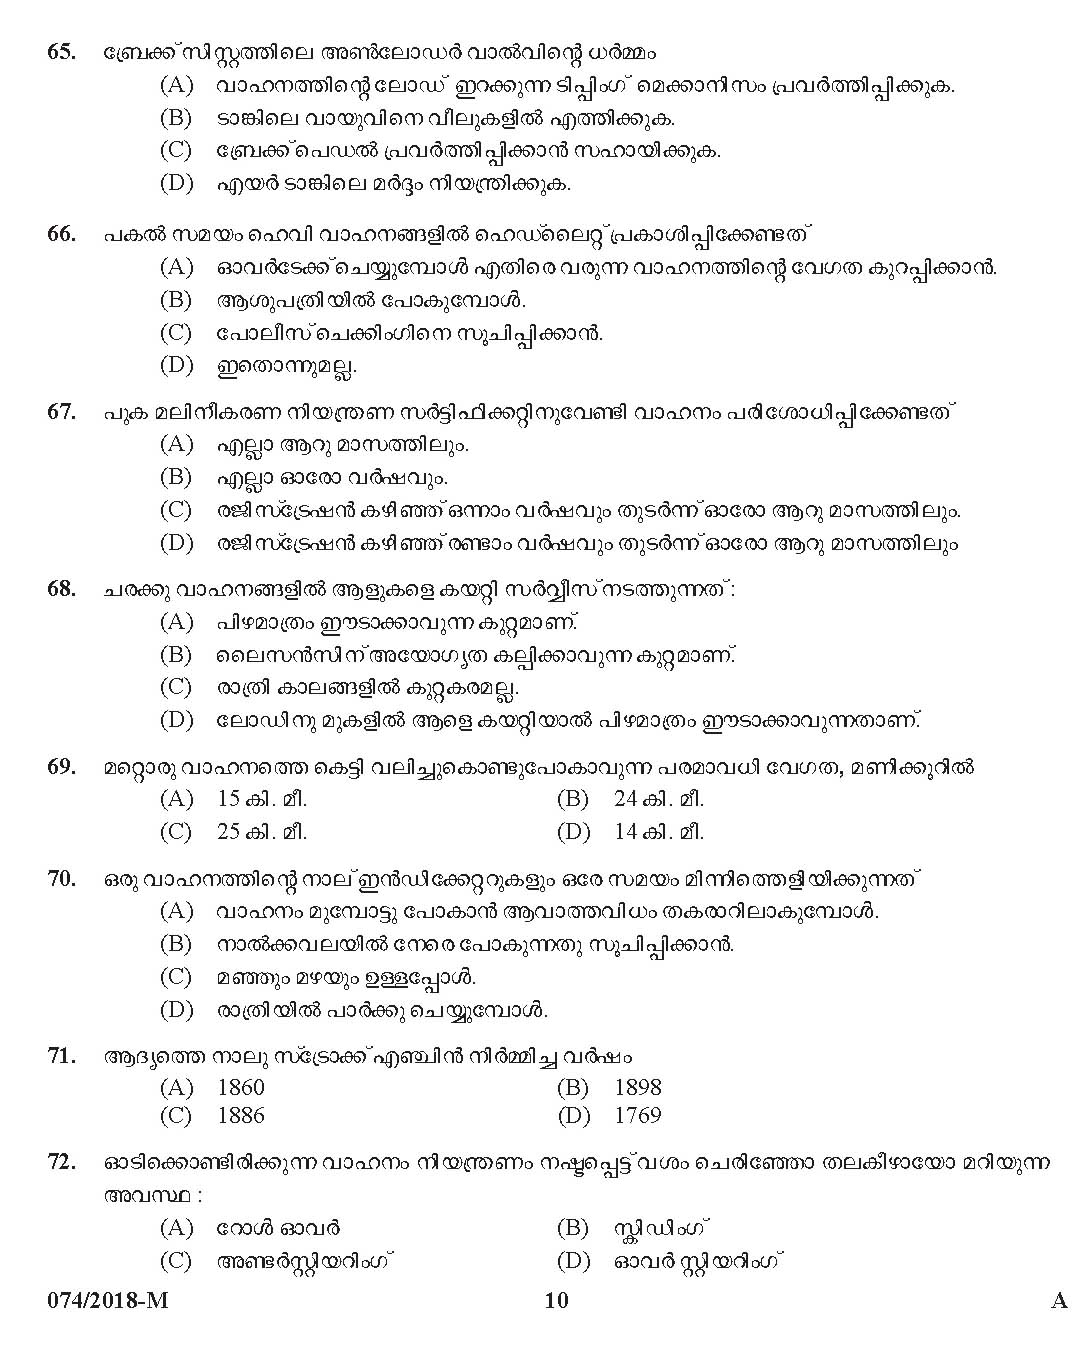 Kerala PSC Police Constable Driver Exam 2018 Question Paper